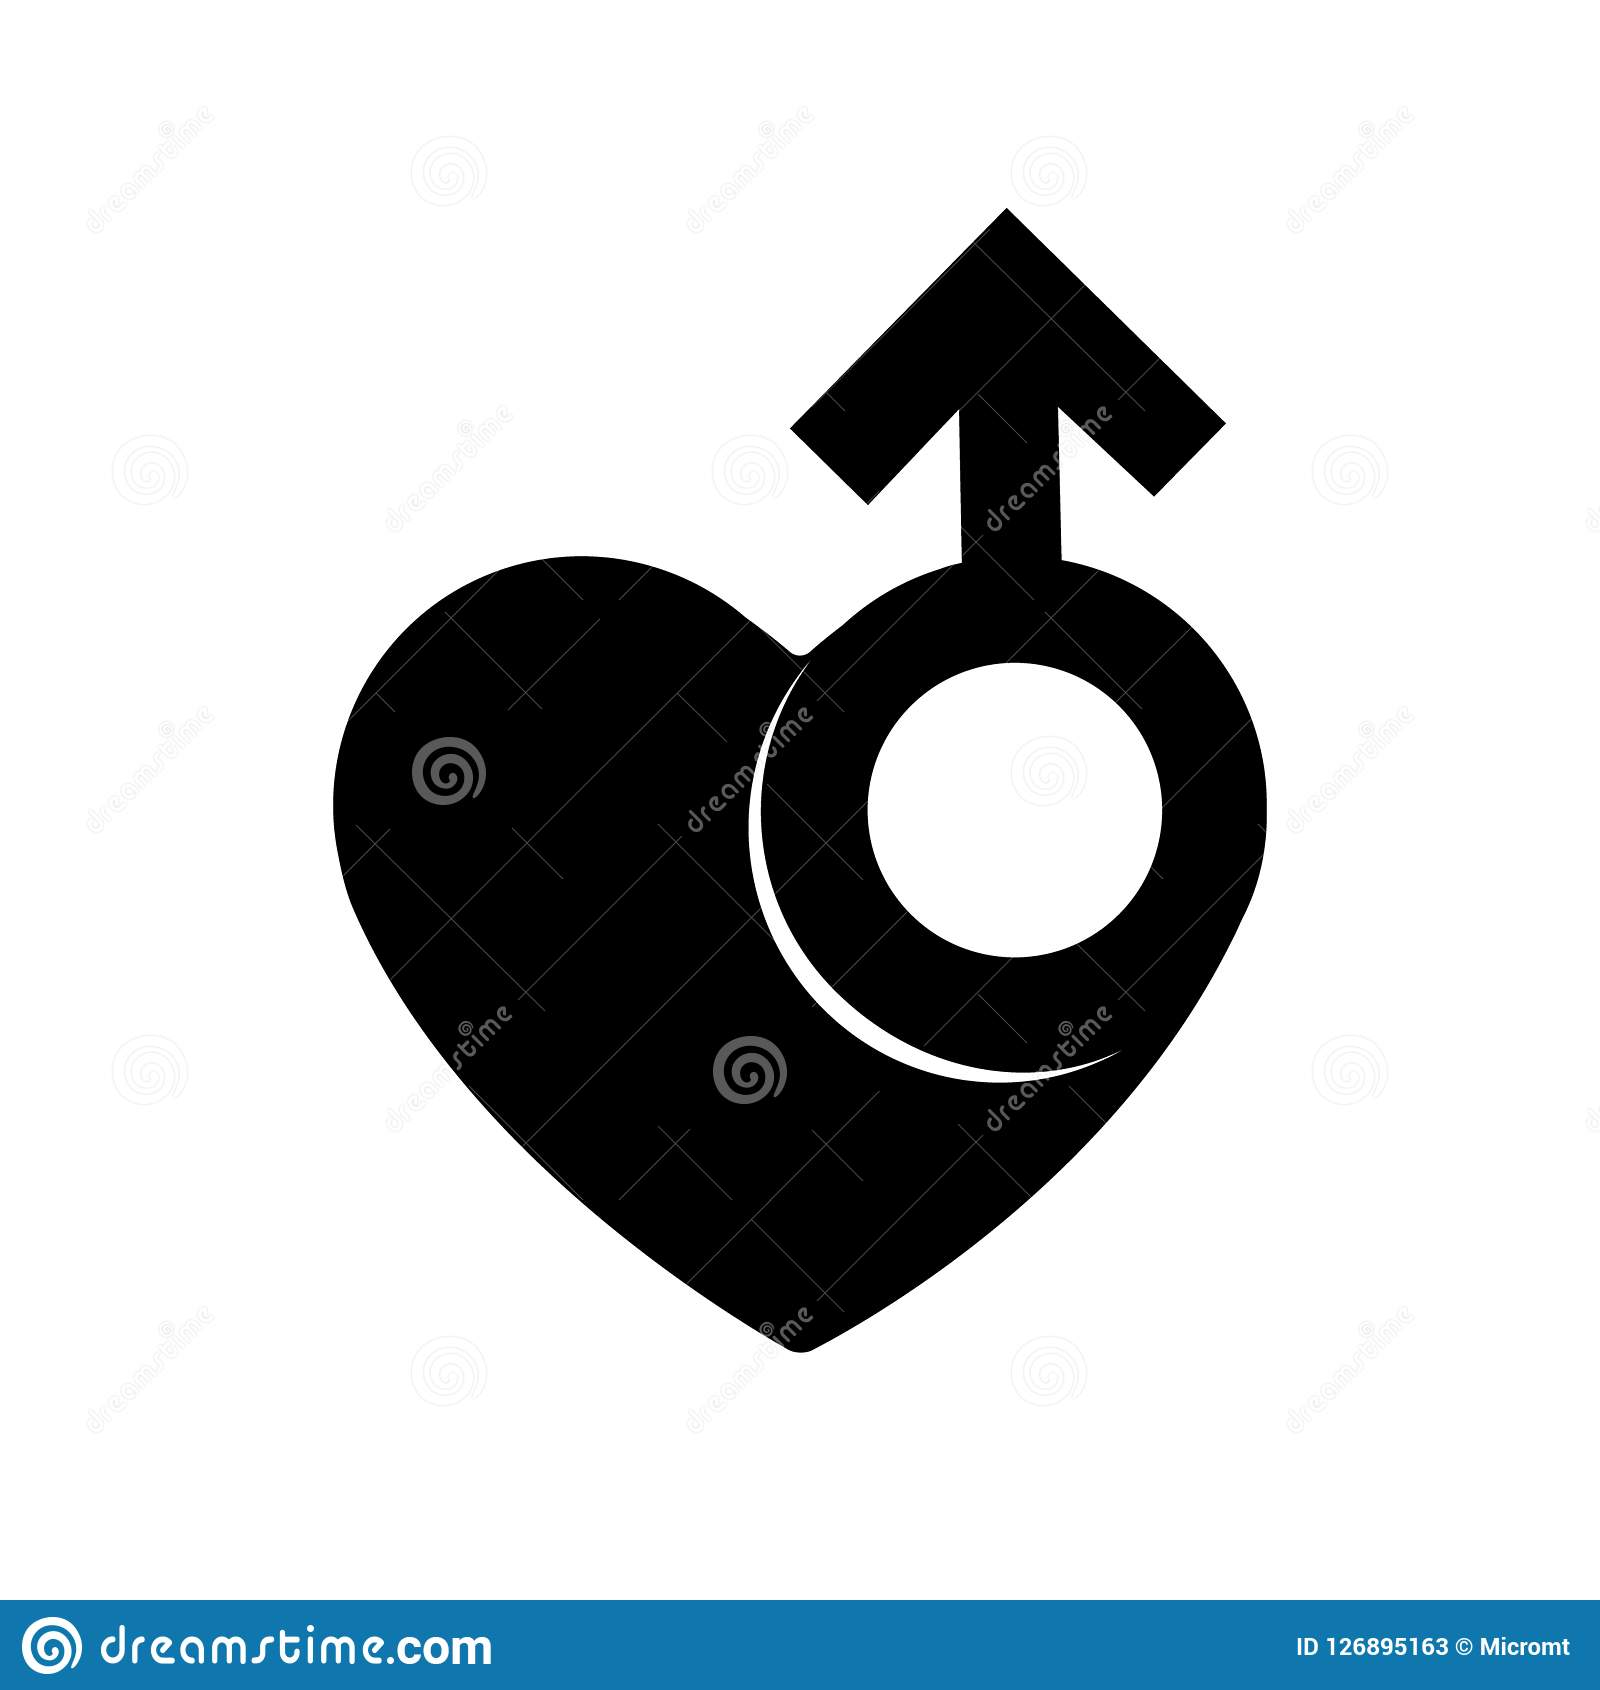 Gender men signs in black heart icon. A symbol of love. Valentines Day. Flat style for graphic design, logo. A lot of soot. A happ